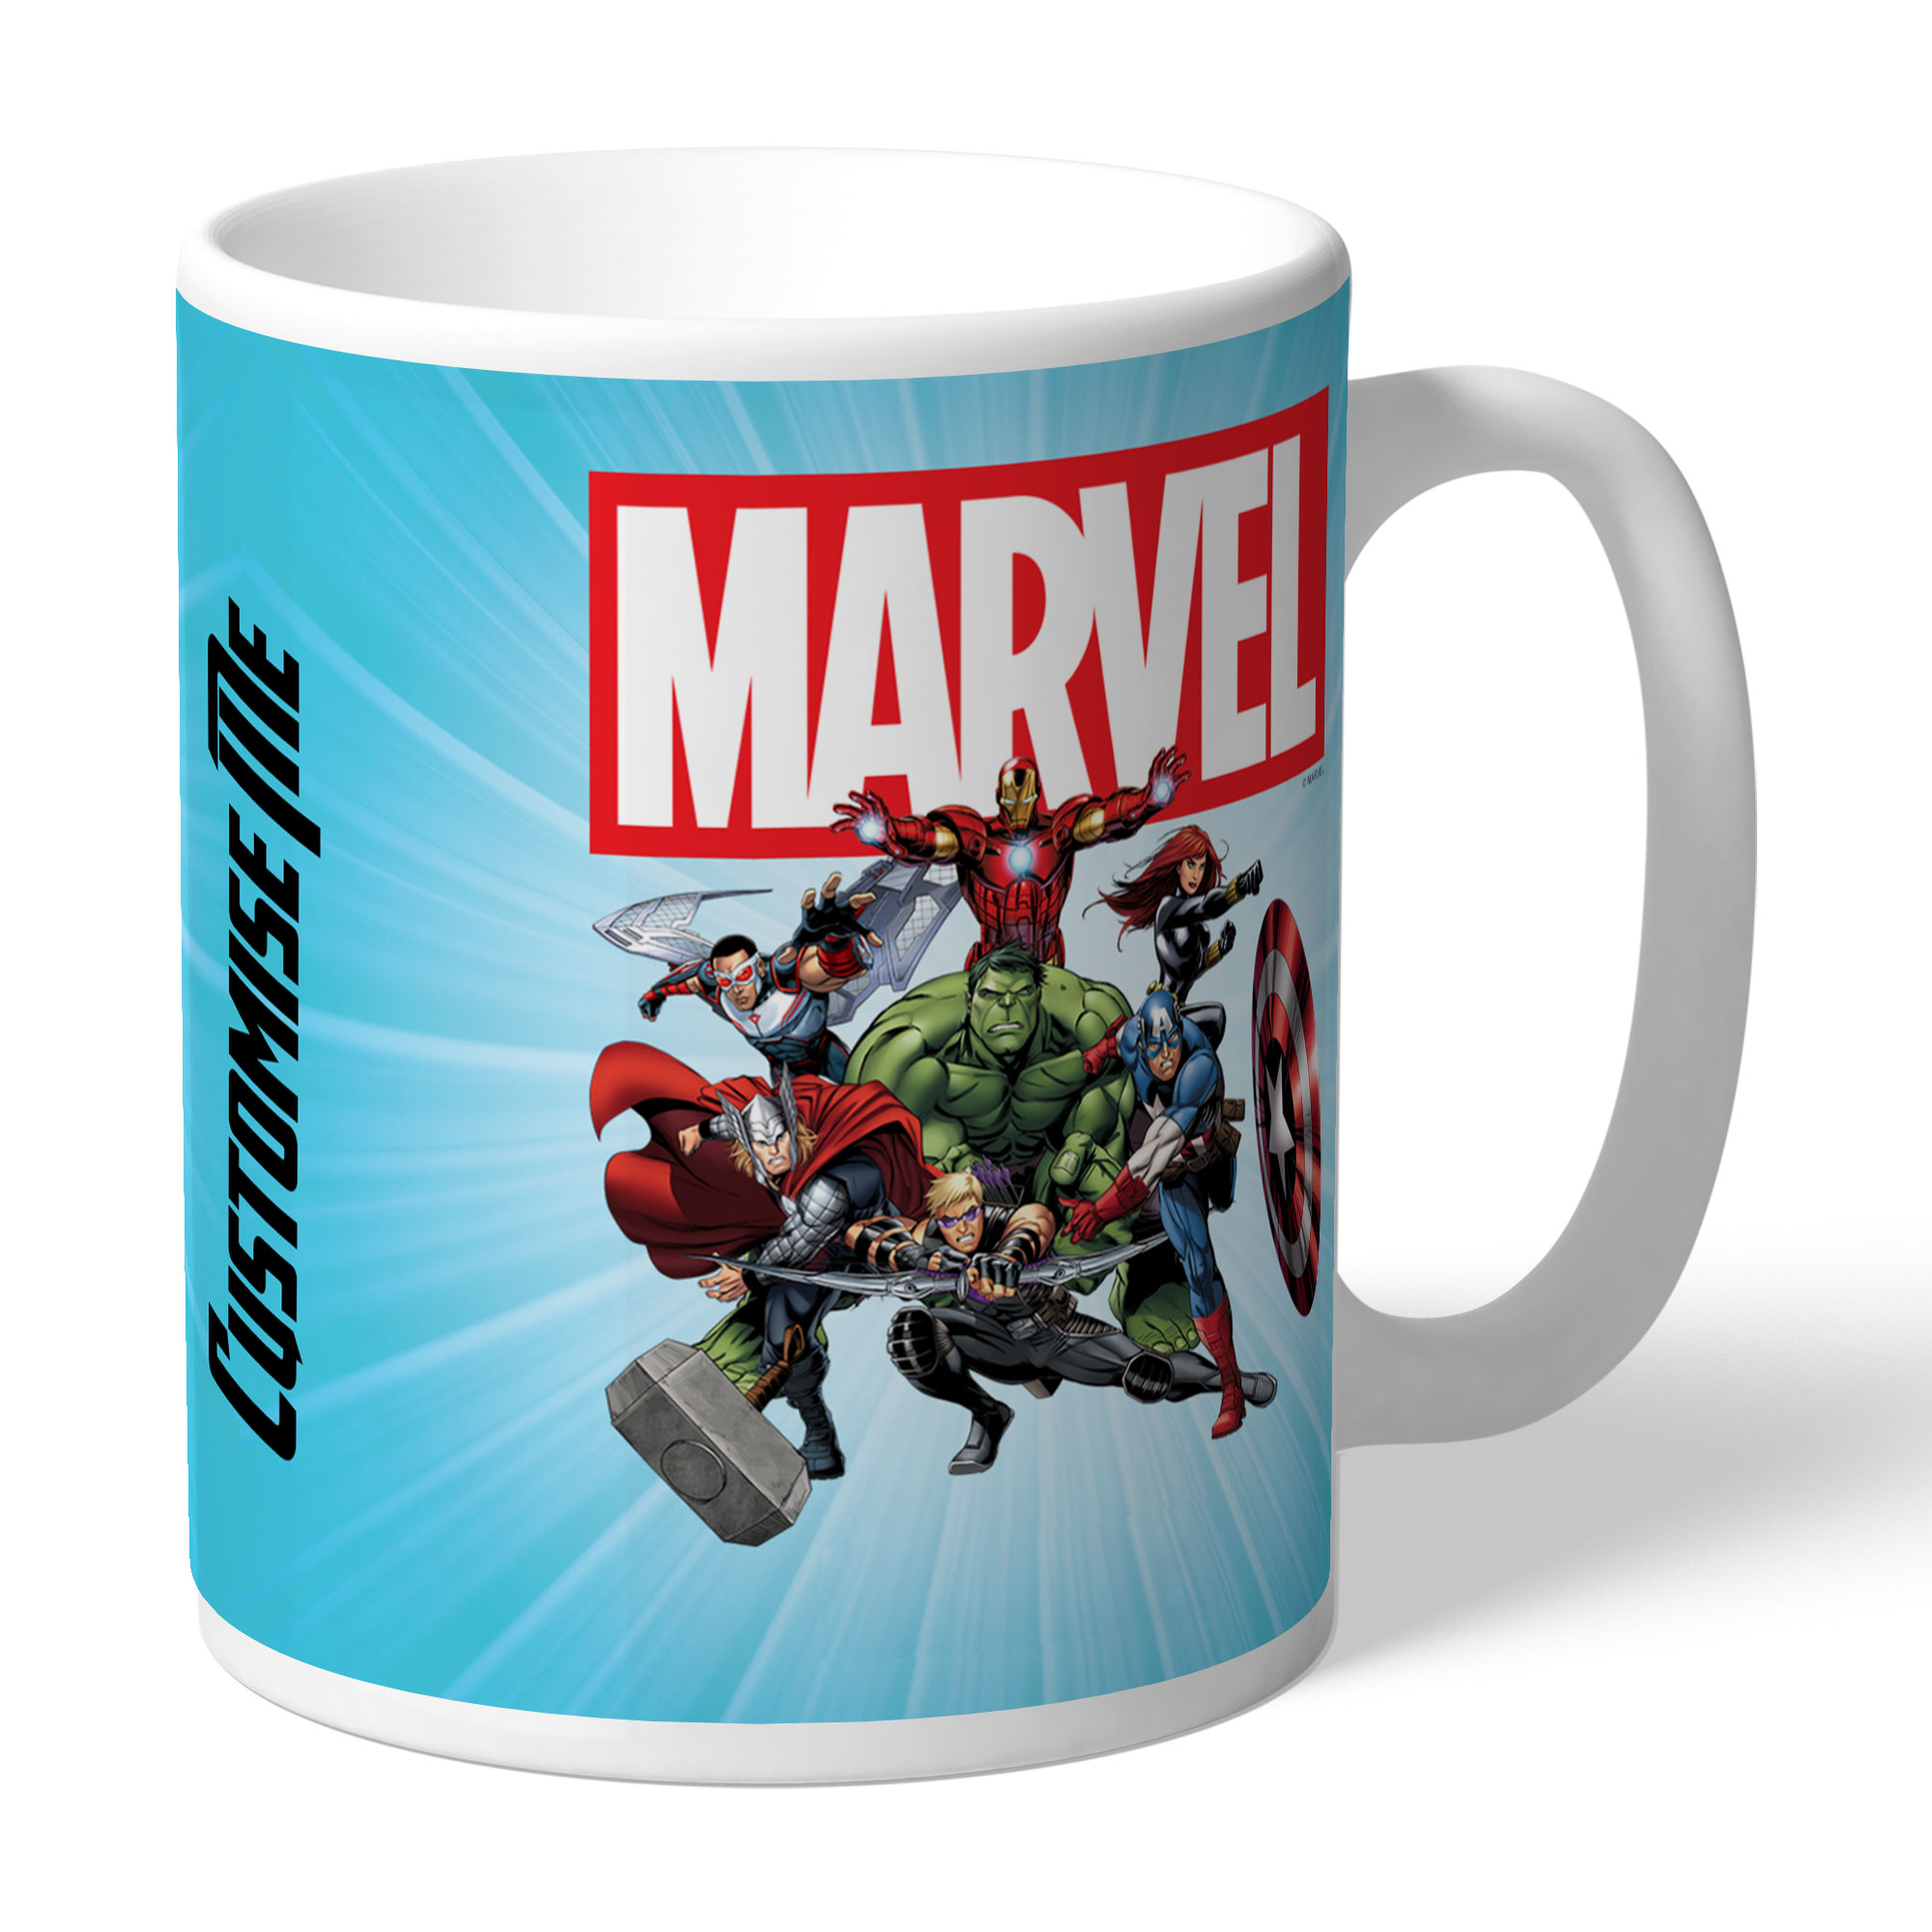 Marvel Avengers Group Mug